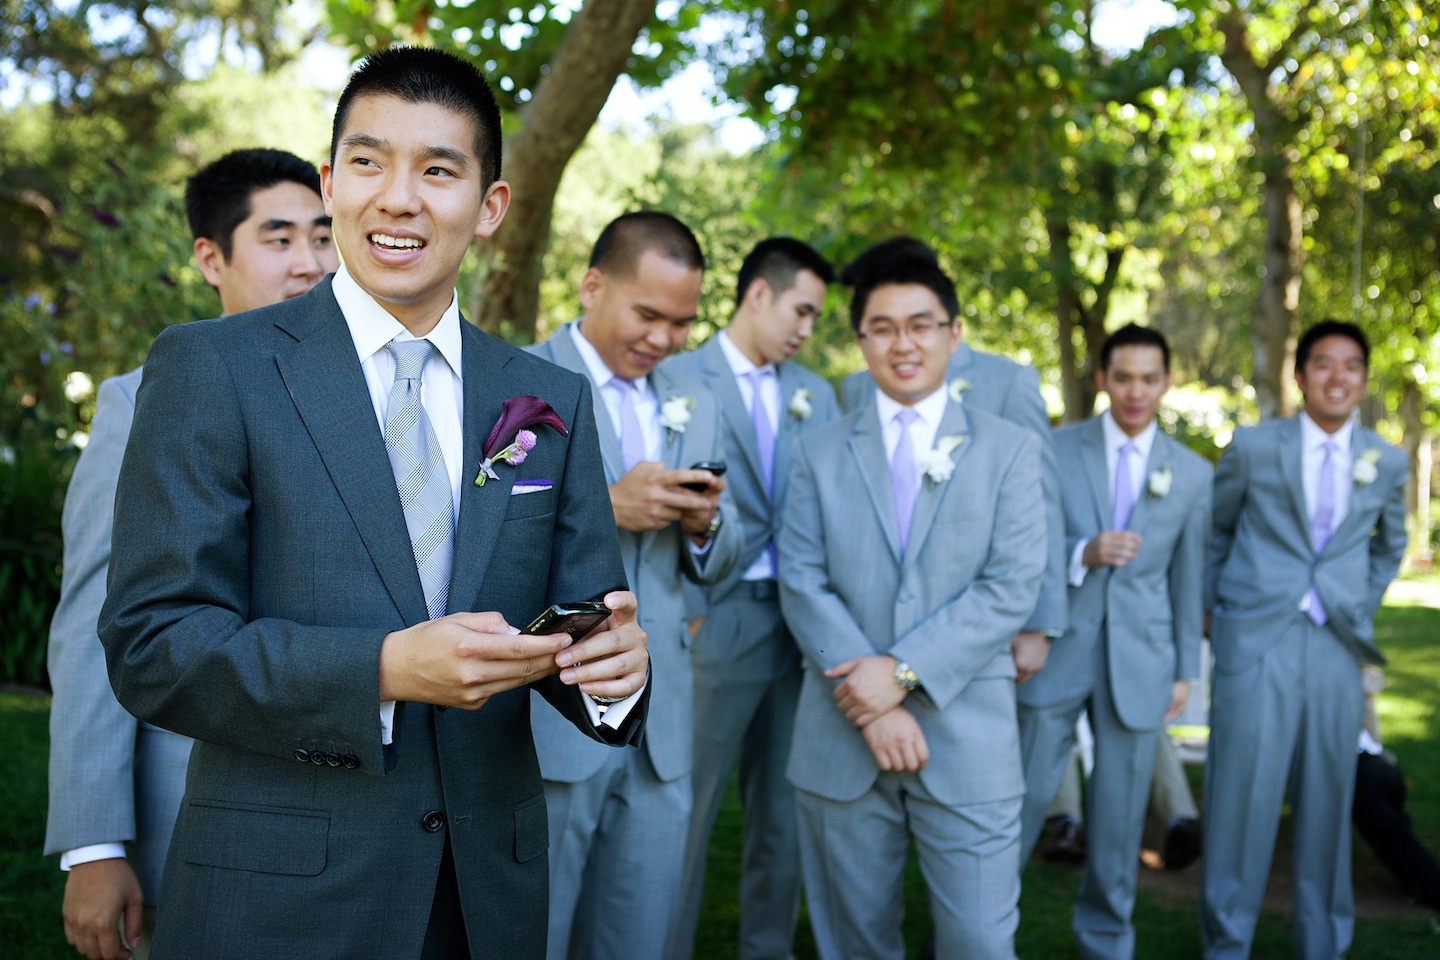 Groomsmen All In Grey Where Groom Still Stands Out